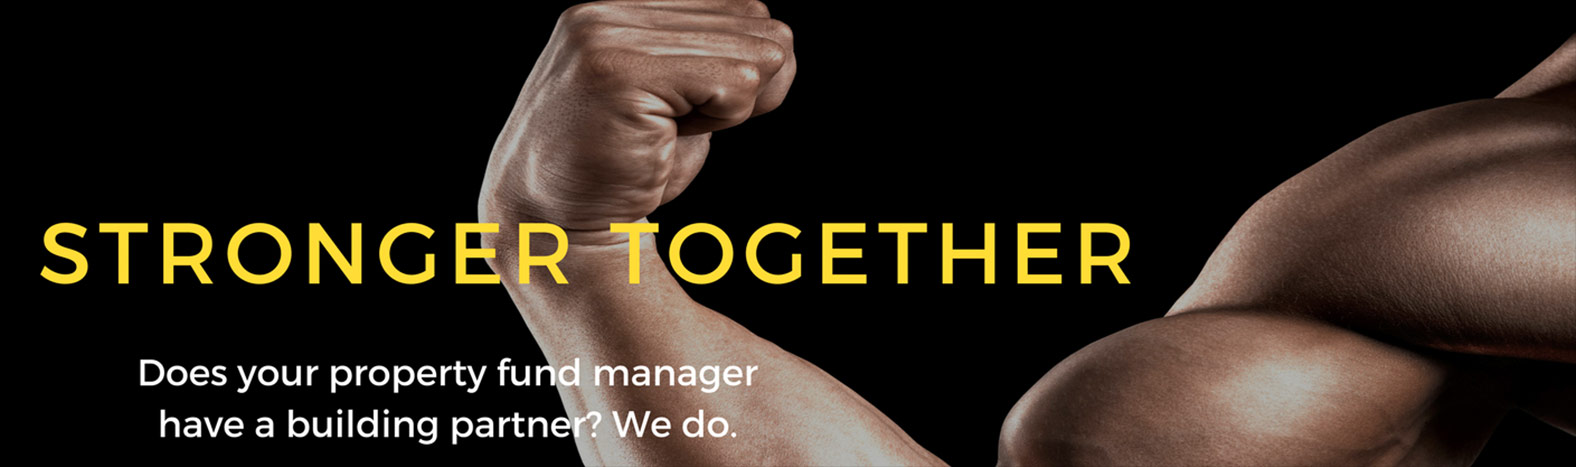 Stronger Together - Does your property fund manager have a building partner? We do.